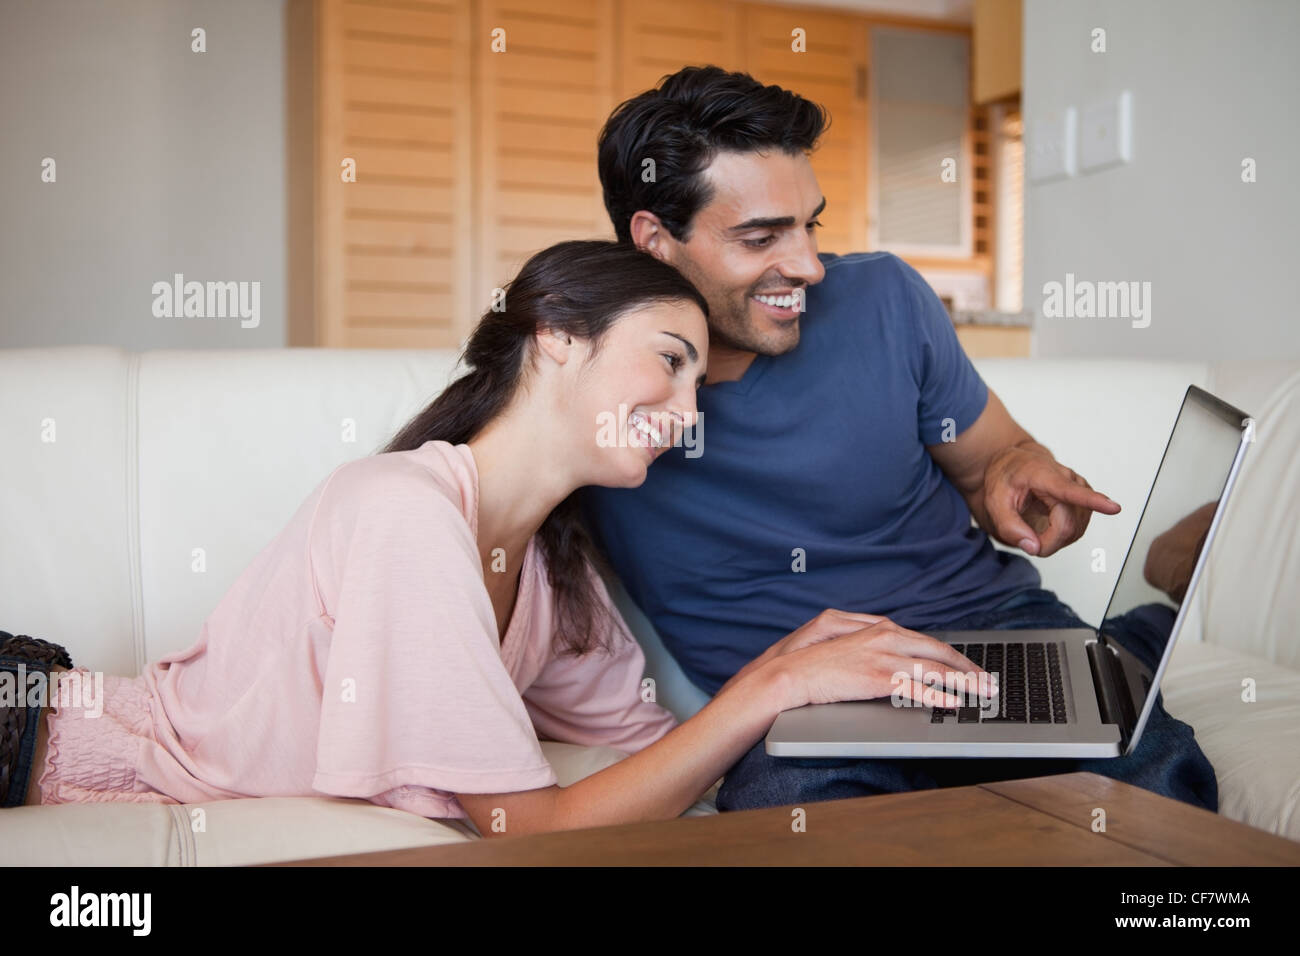 Lovely young couple using a laptop - Stock Image